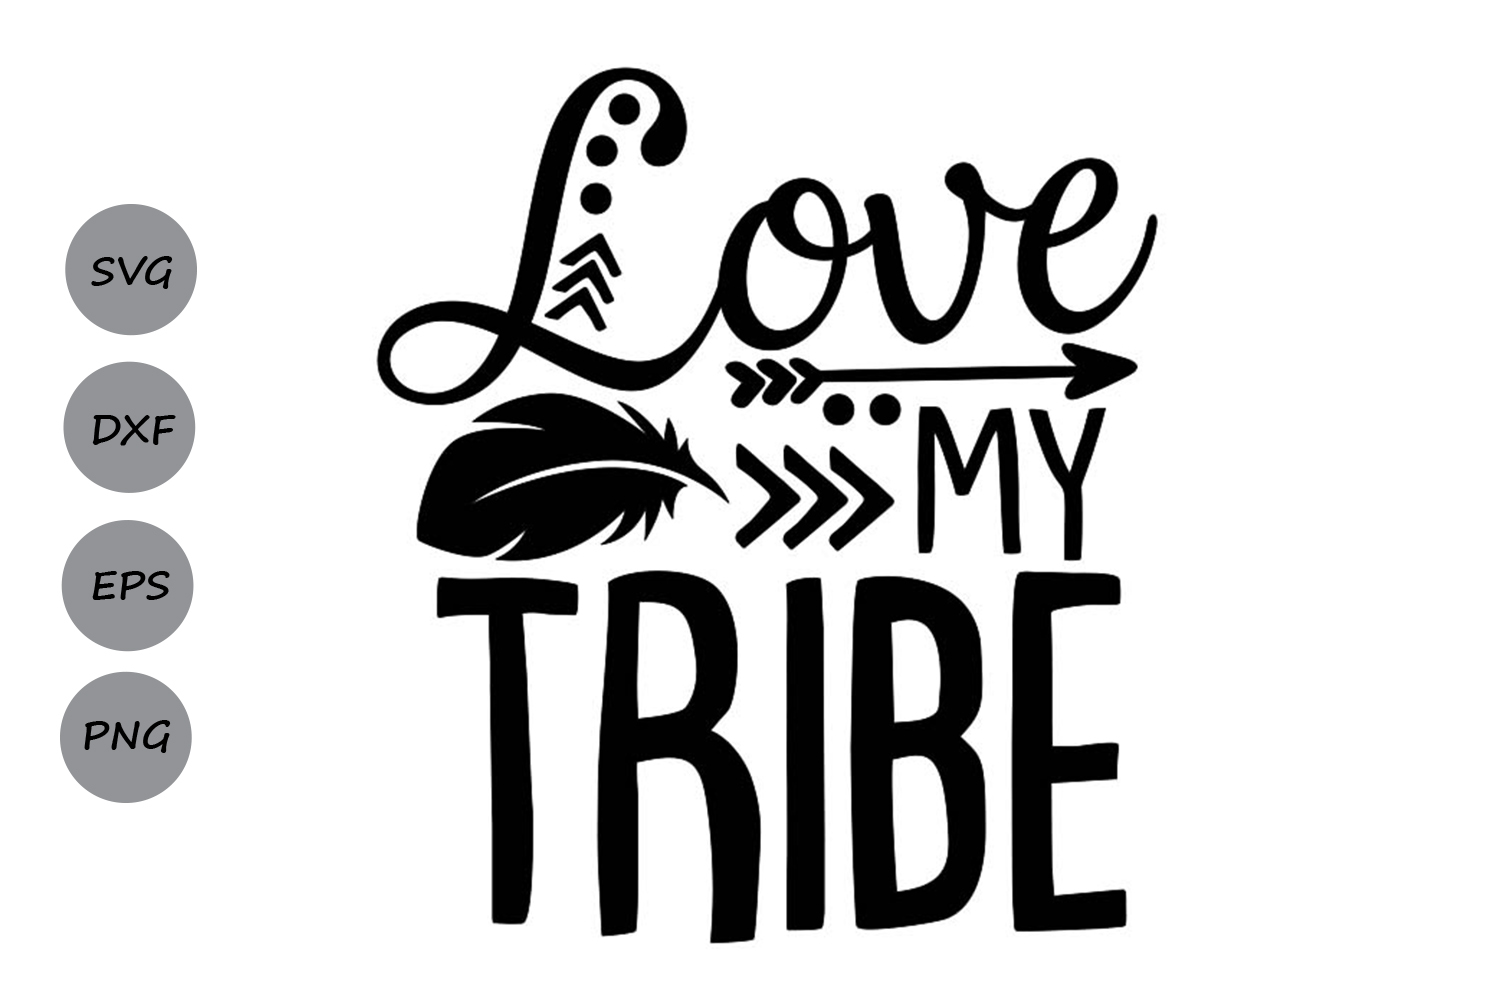 Download Free Love My Tribe Graphic By Cosmosfineart Creative Fabrica for Cricut Explore, Silhouette and other cutting machines.